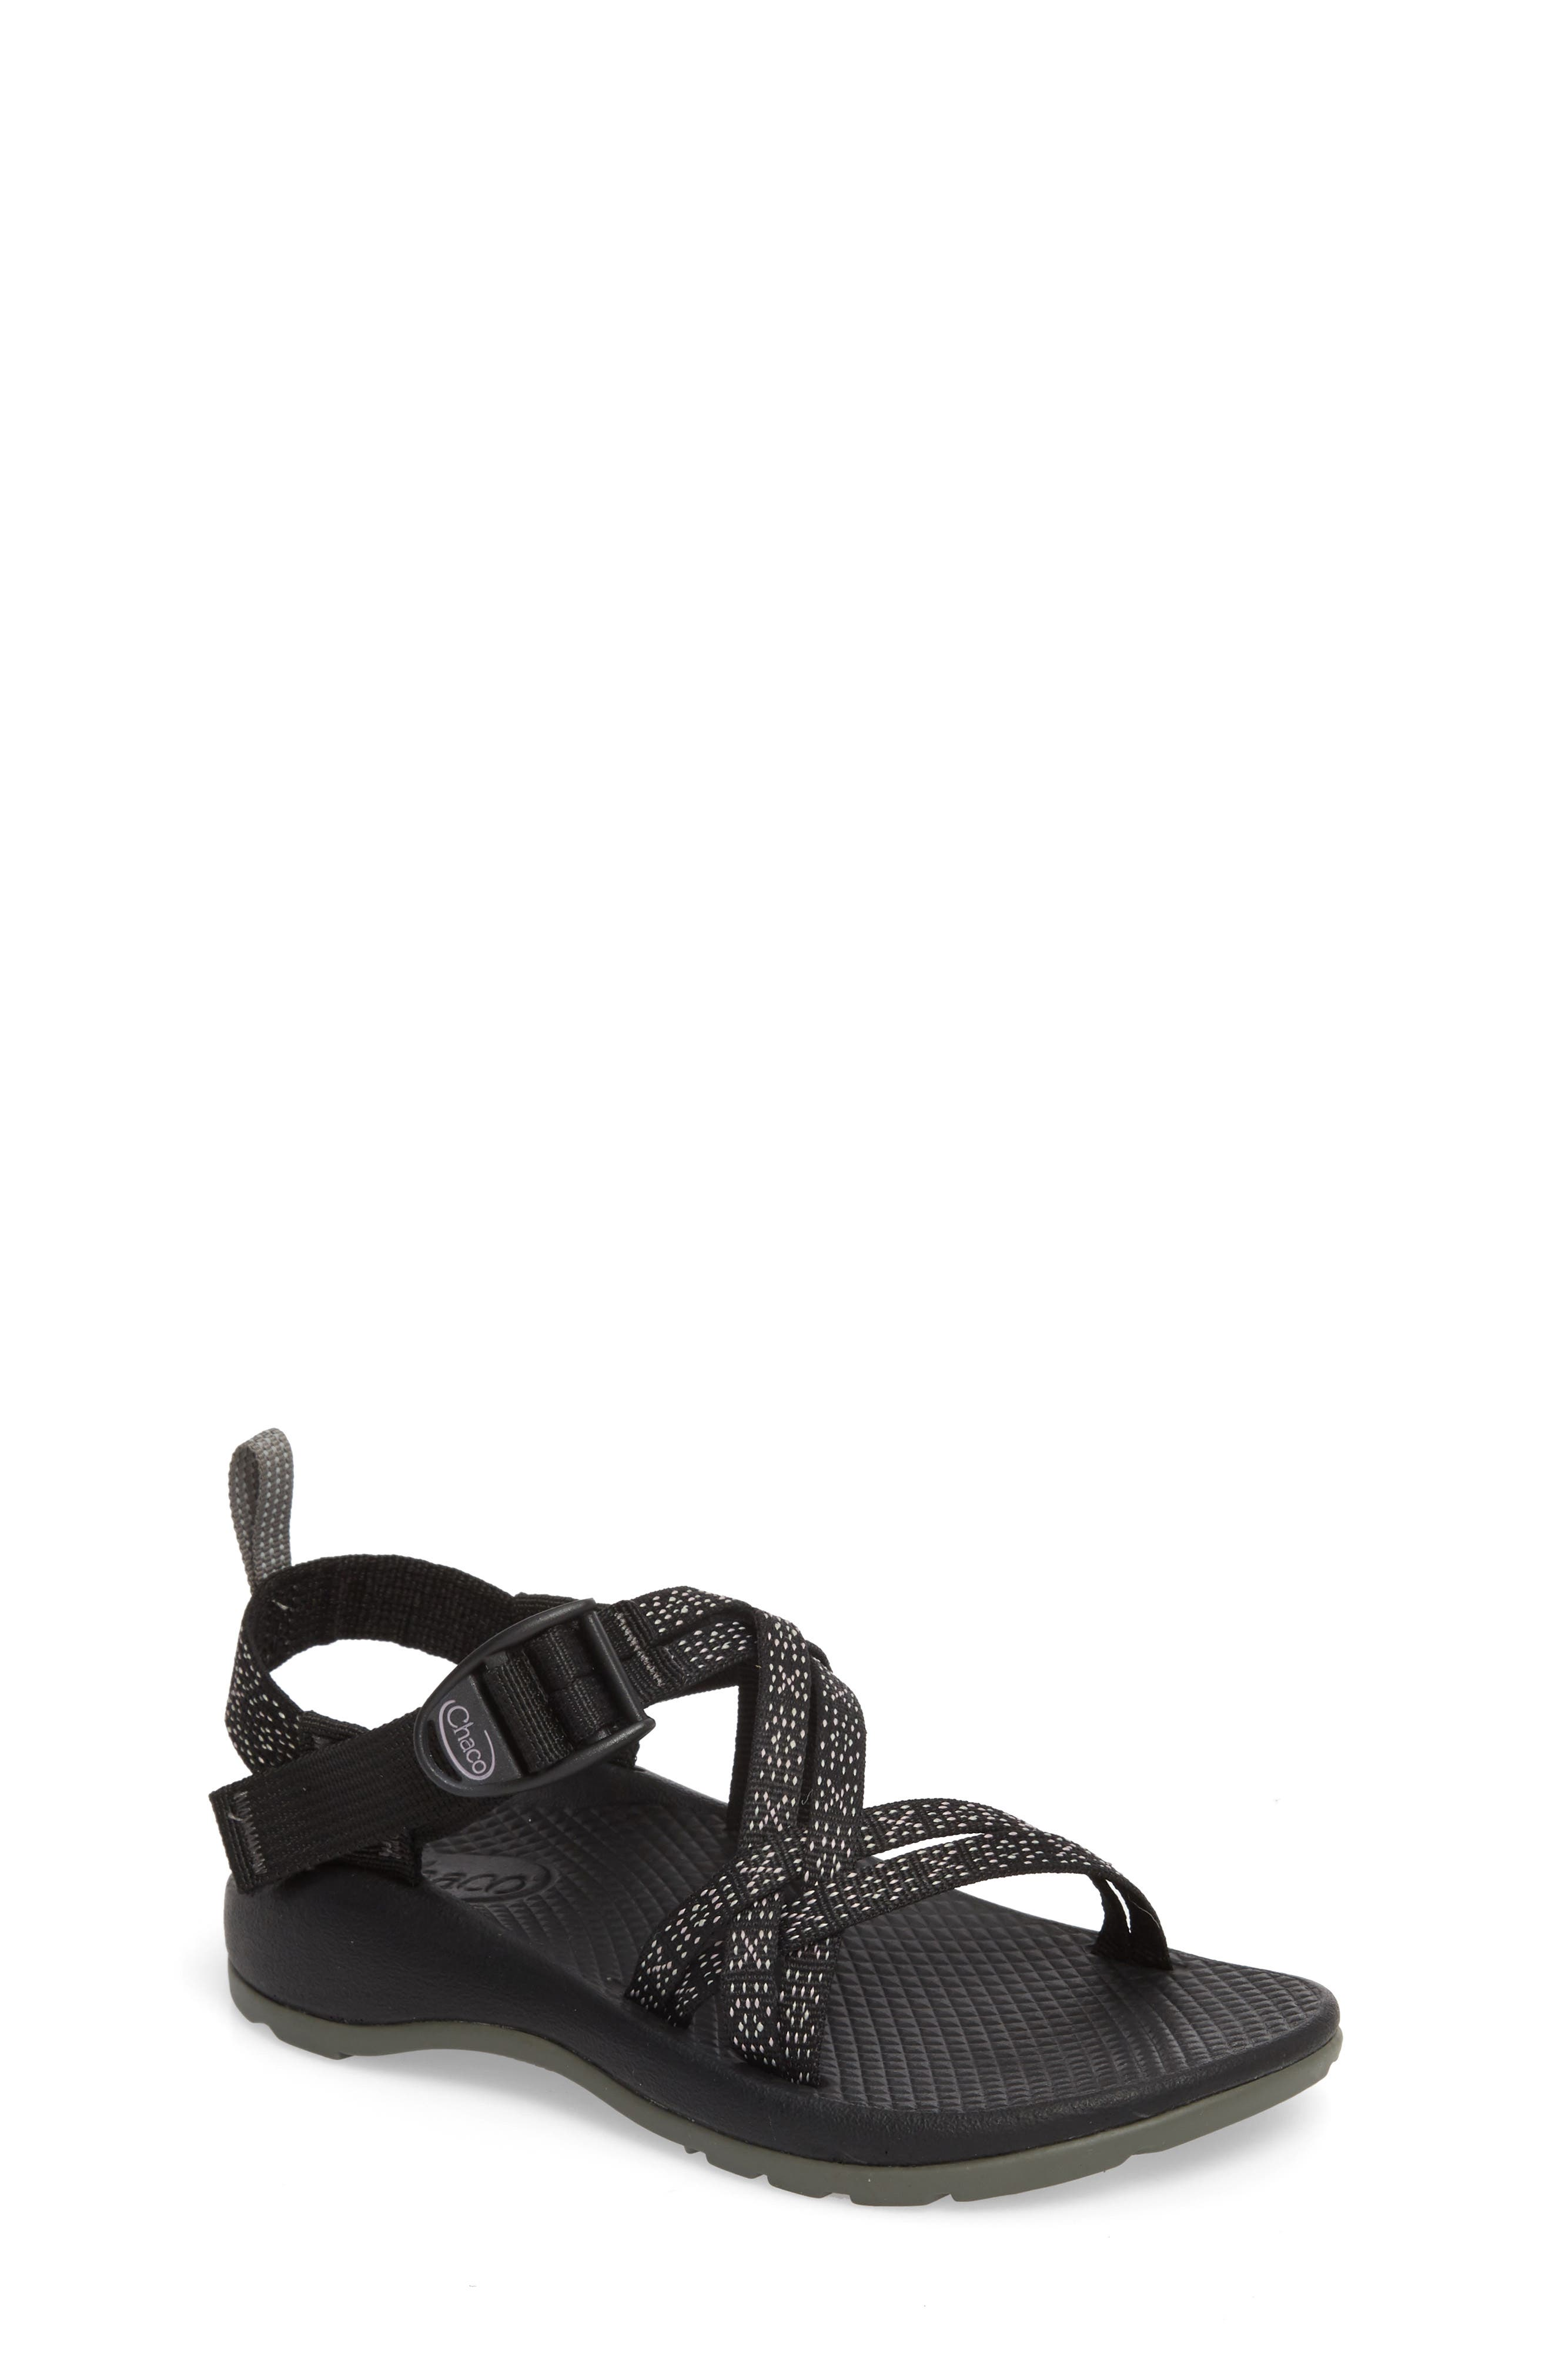 CHACO ZX/1 Sport Sandal, Main, color, HUGS AND KISSES